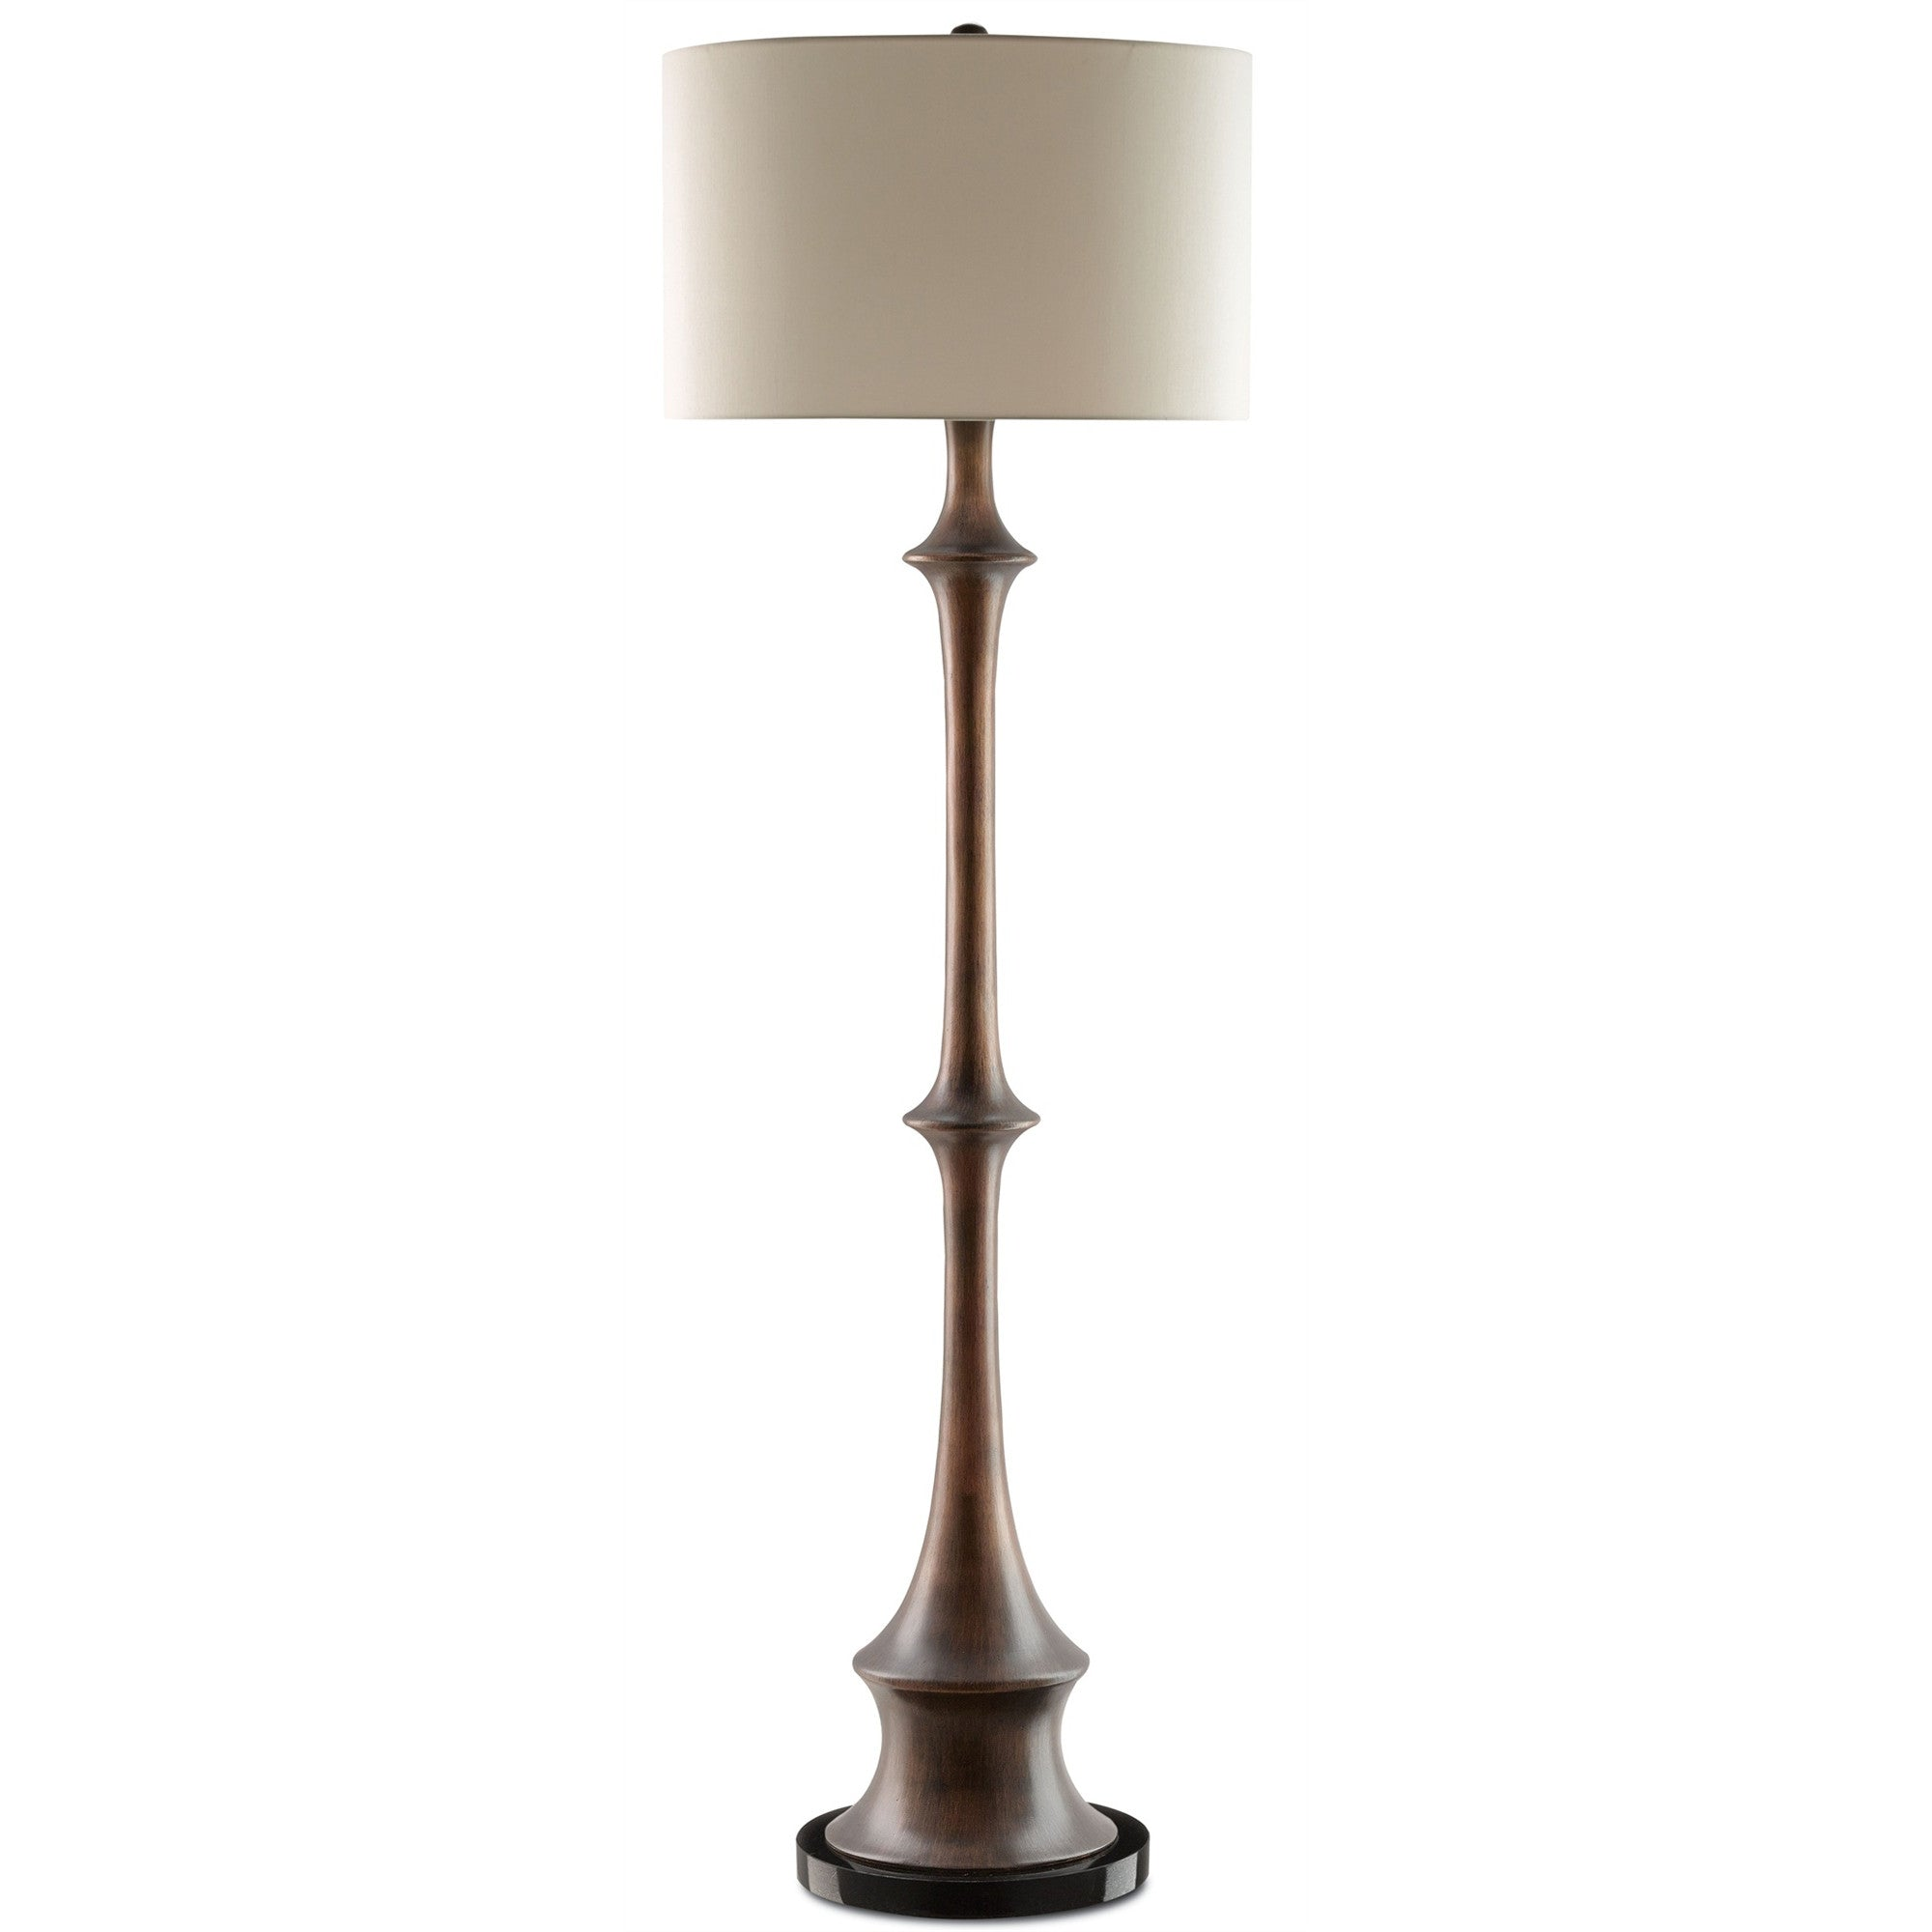 Currey and Co - Wayland Floor Lamp